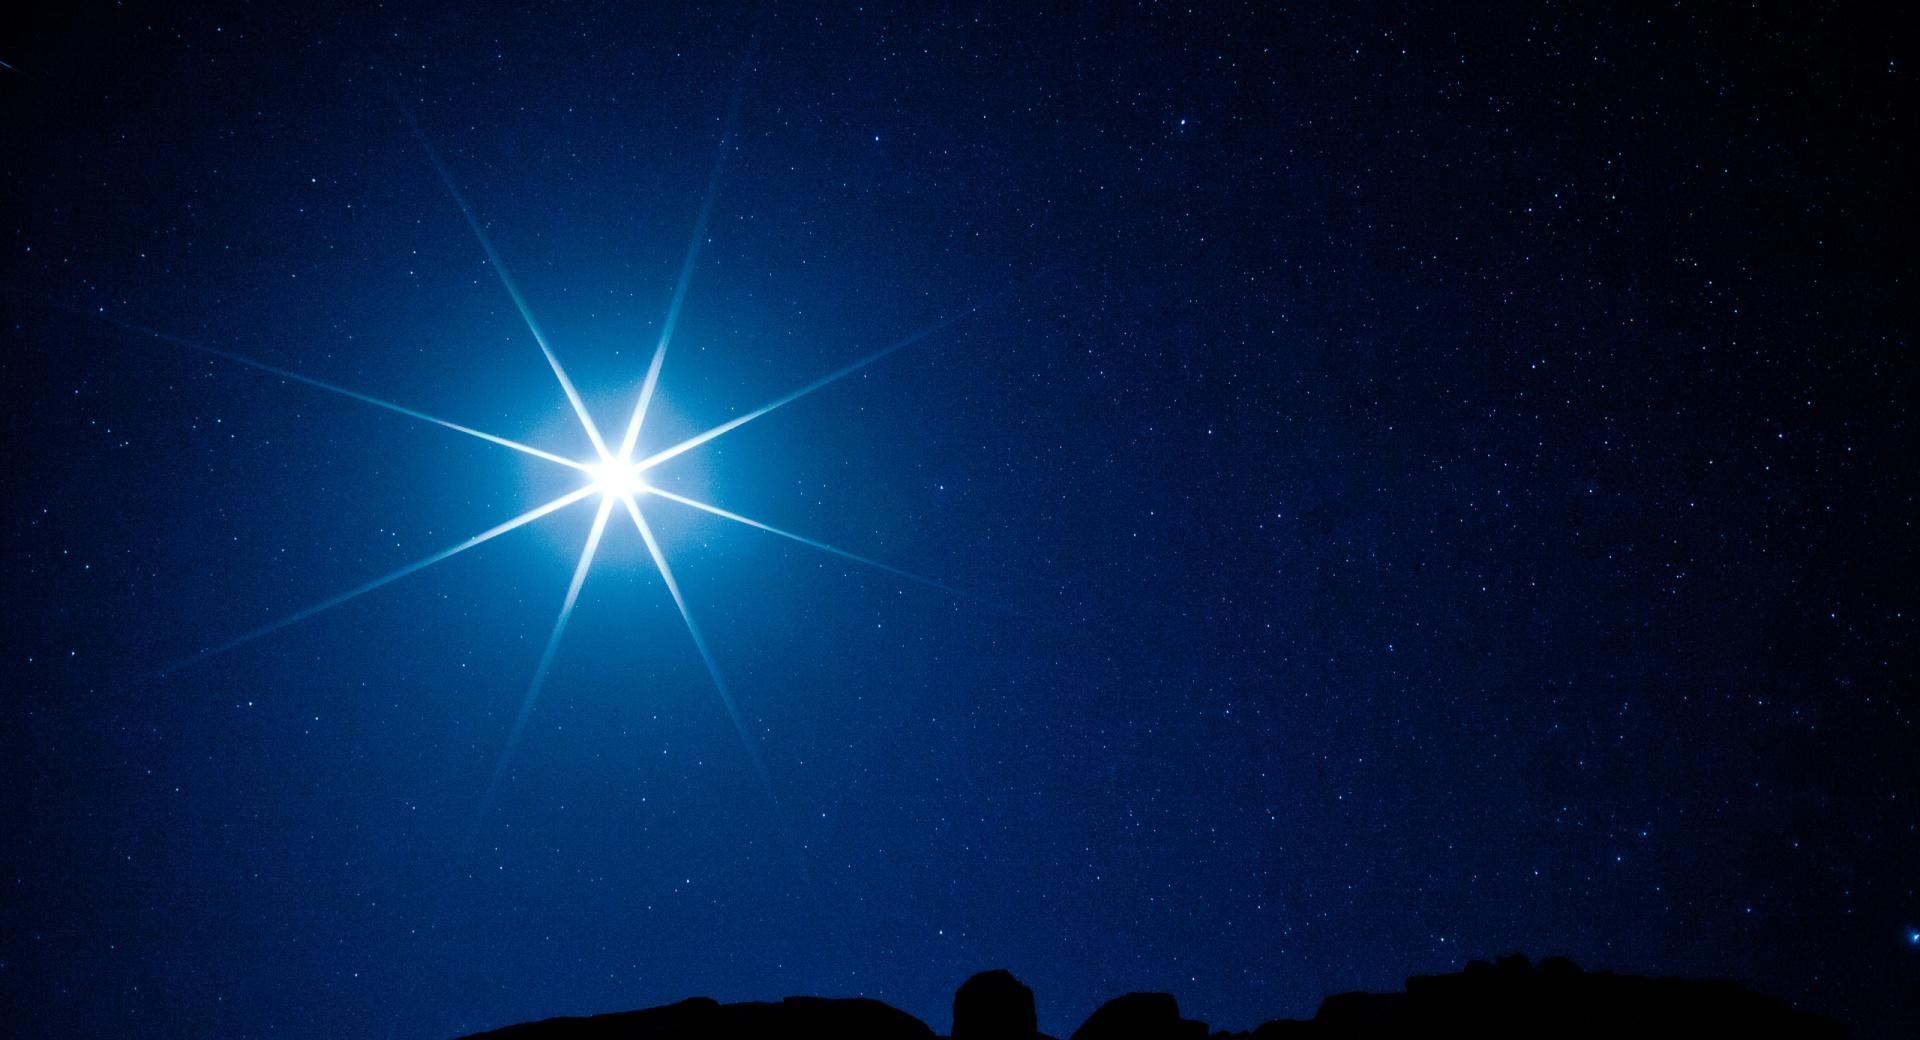 Shining Star at 1024 x 768 size wallpapers HD quality